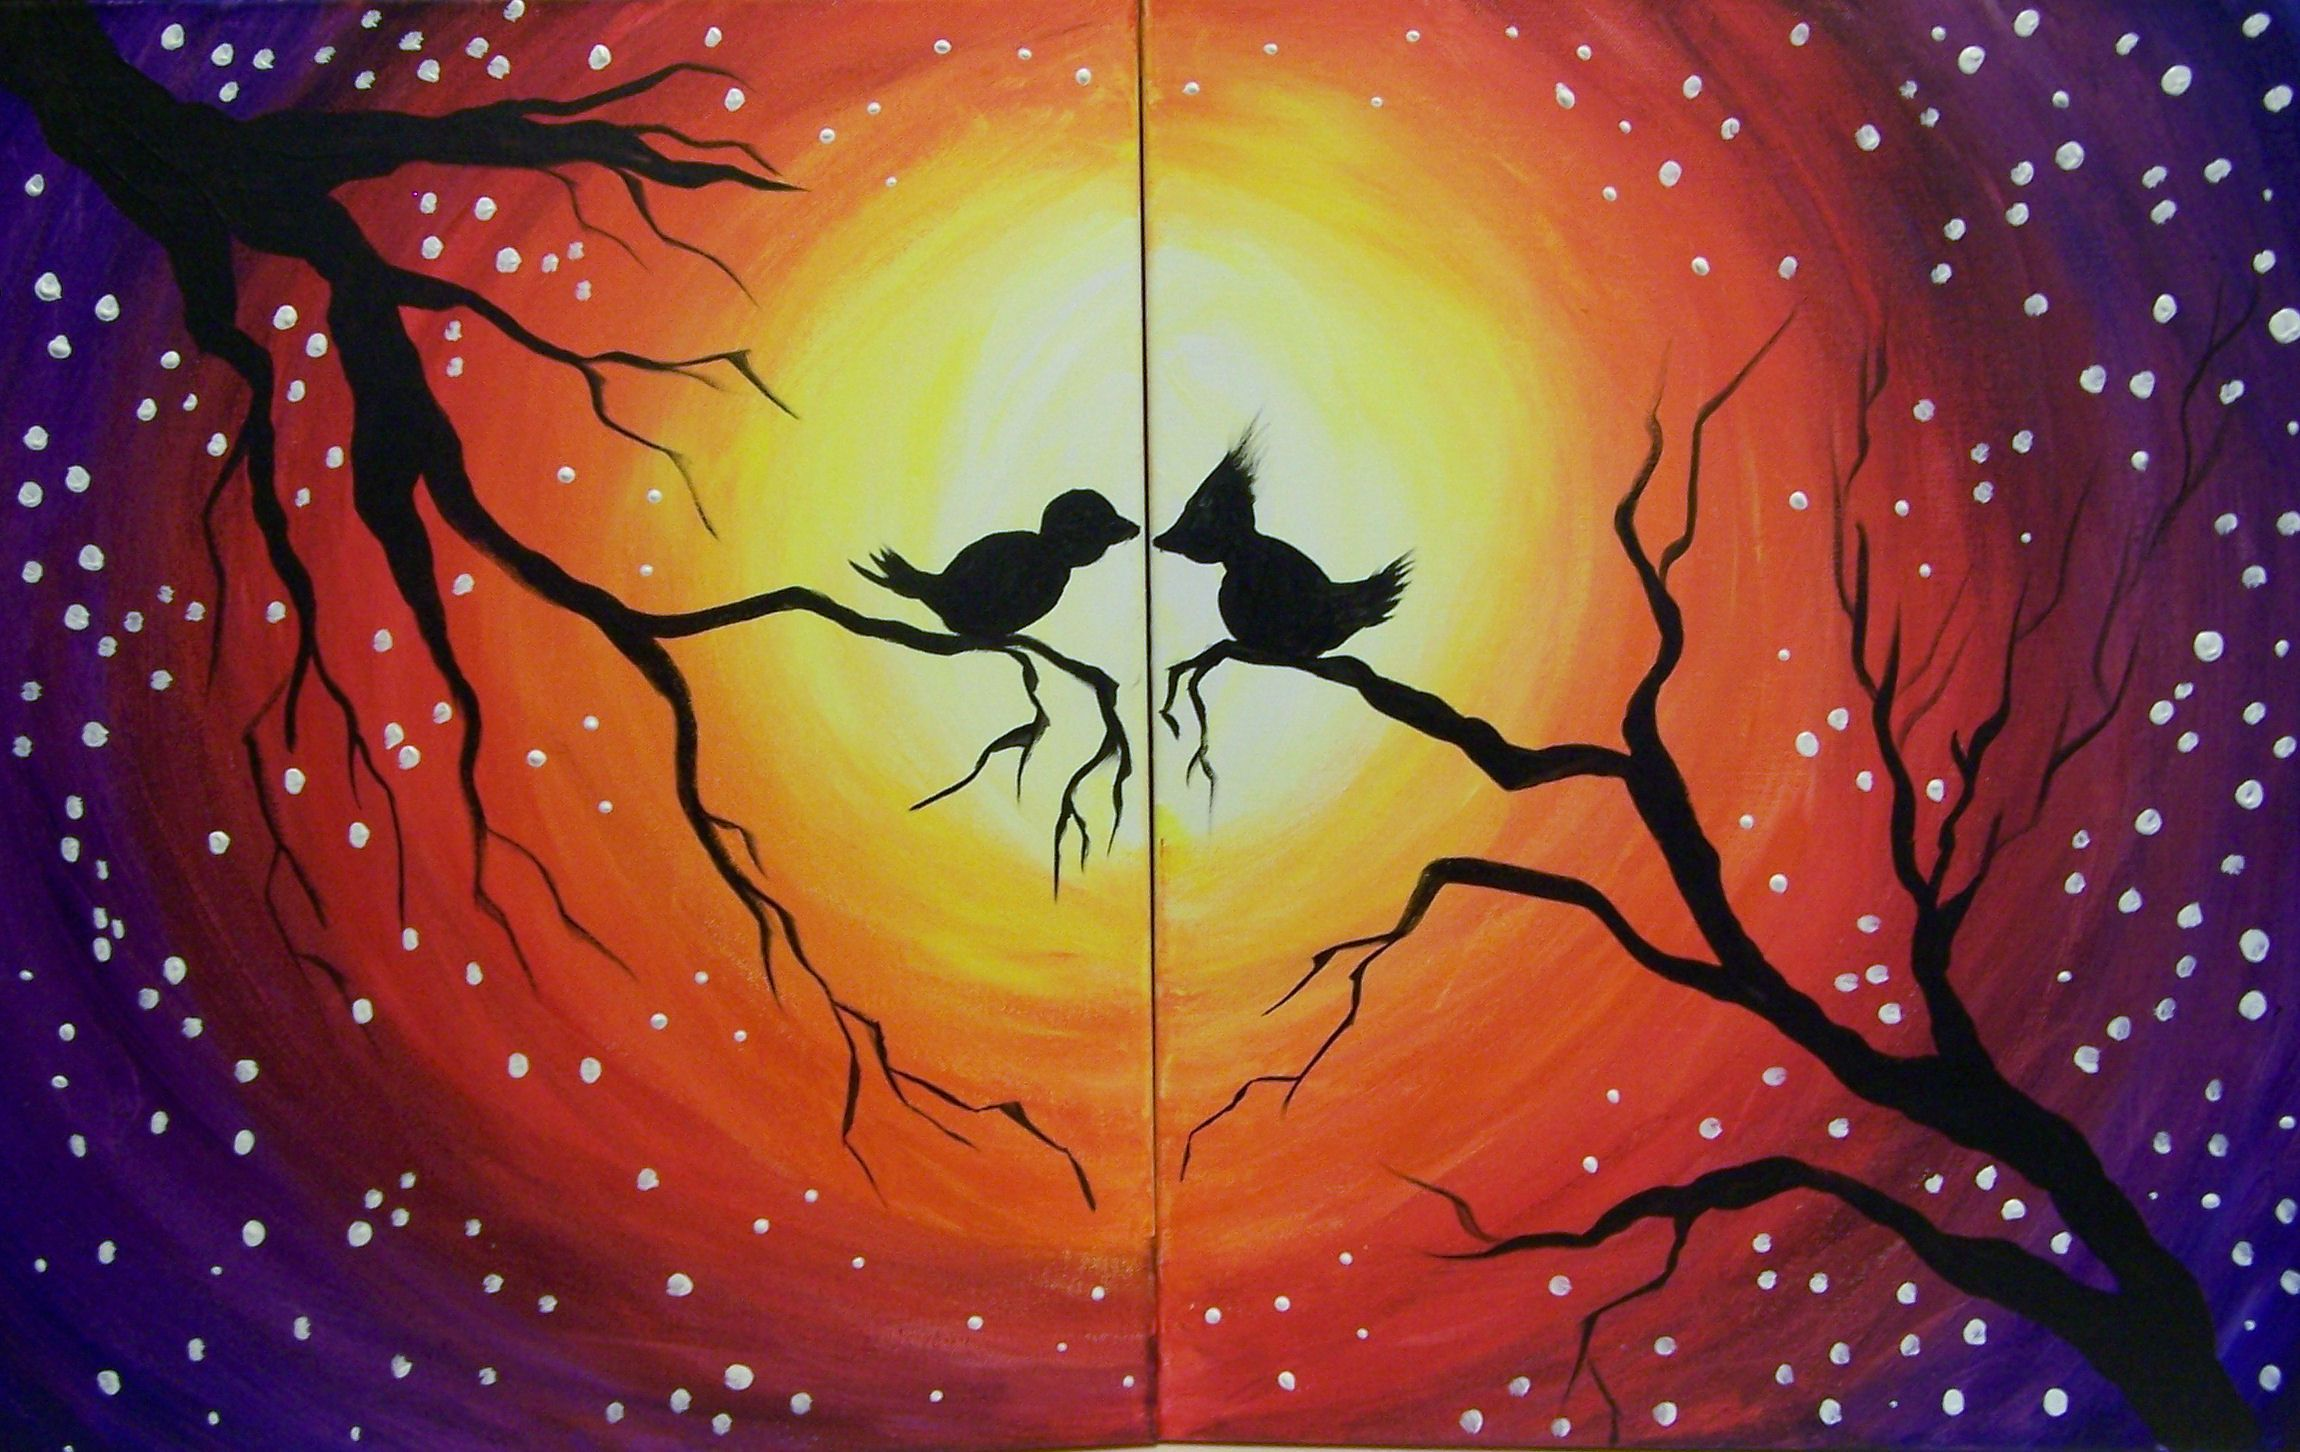 Couples Class Lover S Night At Whimsy Art Studio Www Whimsyartstudio Com Night Painting Couples Canvas Painting Whimsy Art